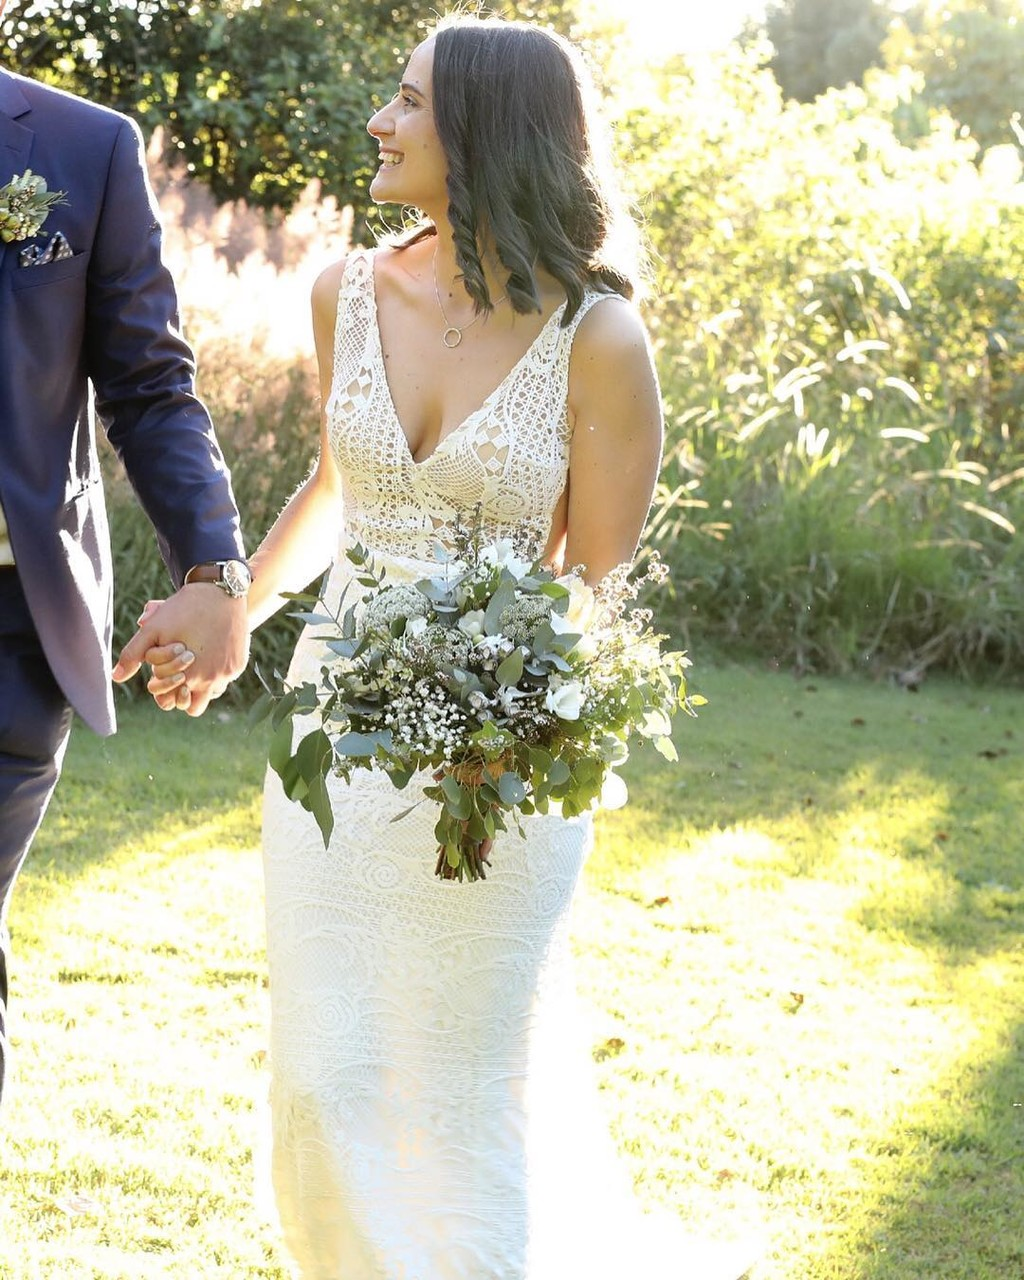 This glowing Goddess bride in the golden light @lovelyrachlove